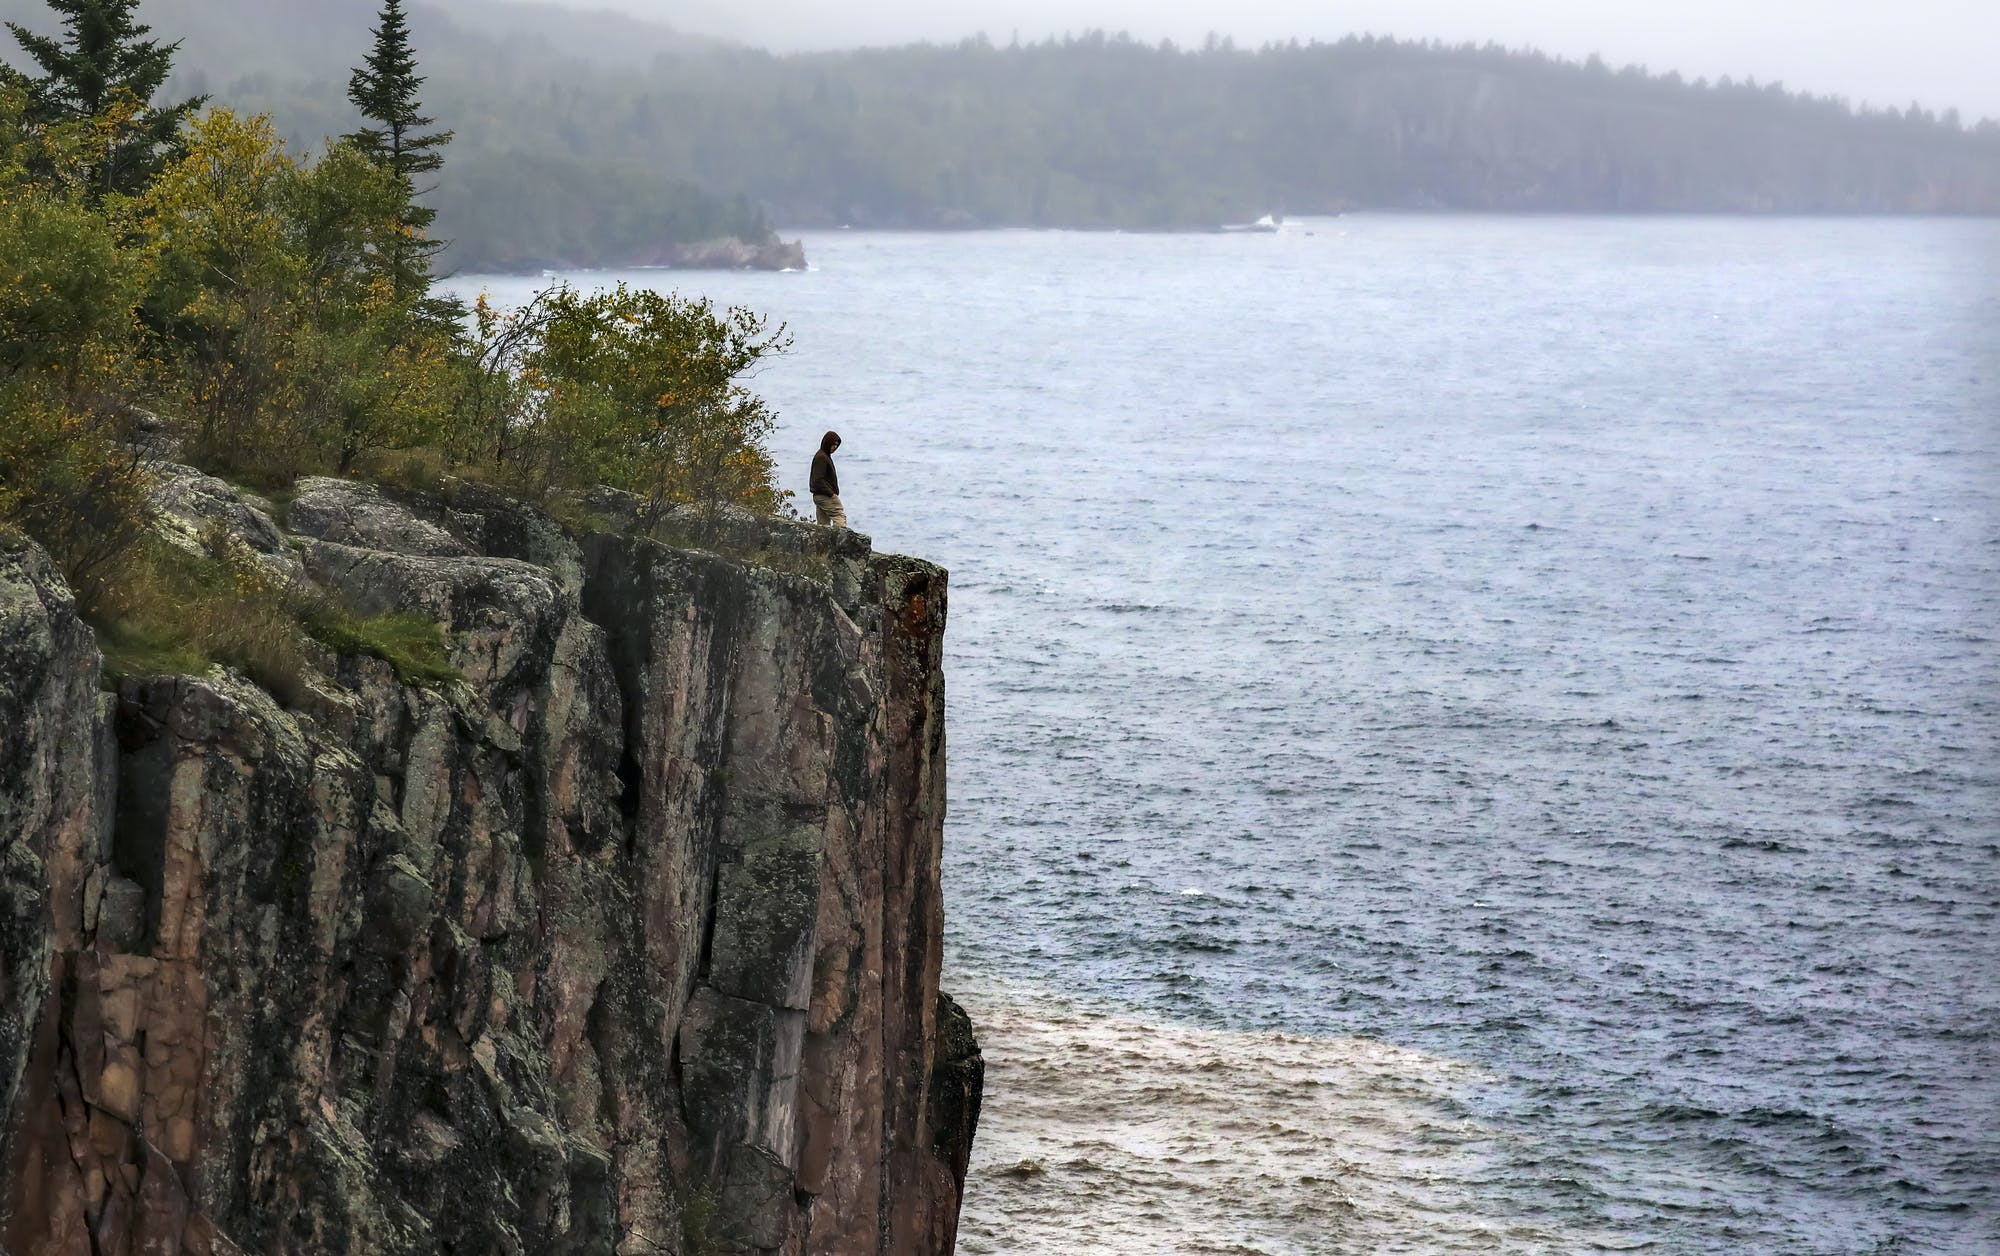 Lake Superior is near record high and threatening shoreline